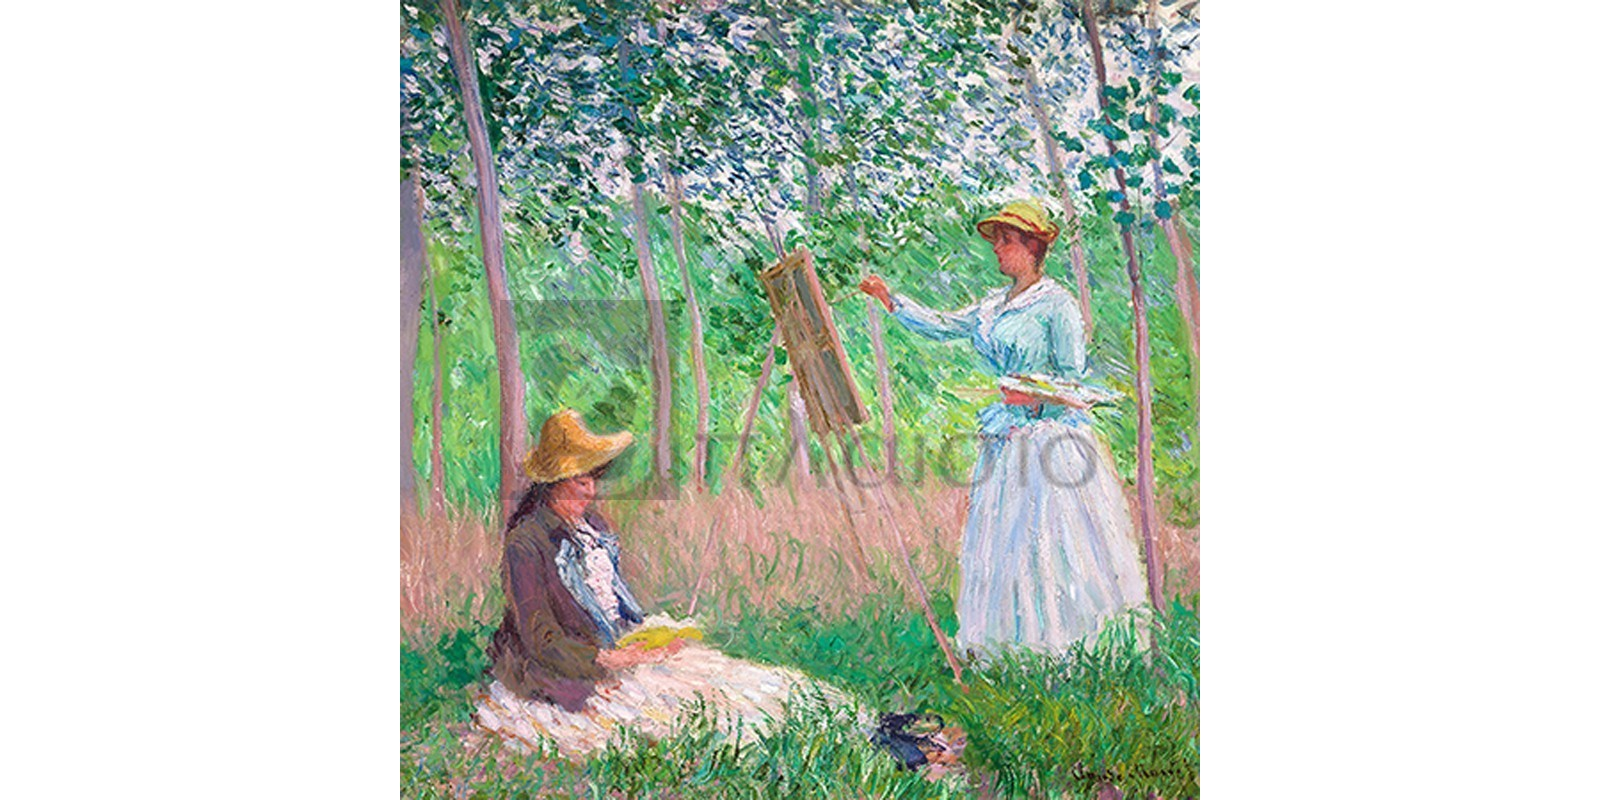 Claude Monet - In the Woods at Giverny